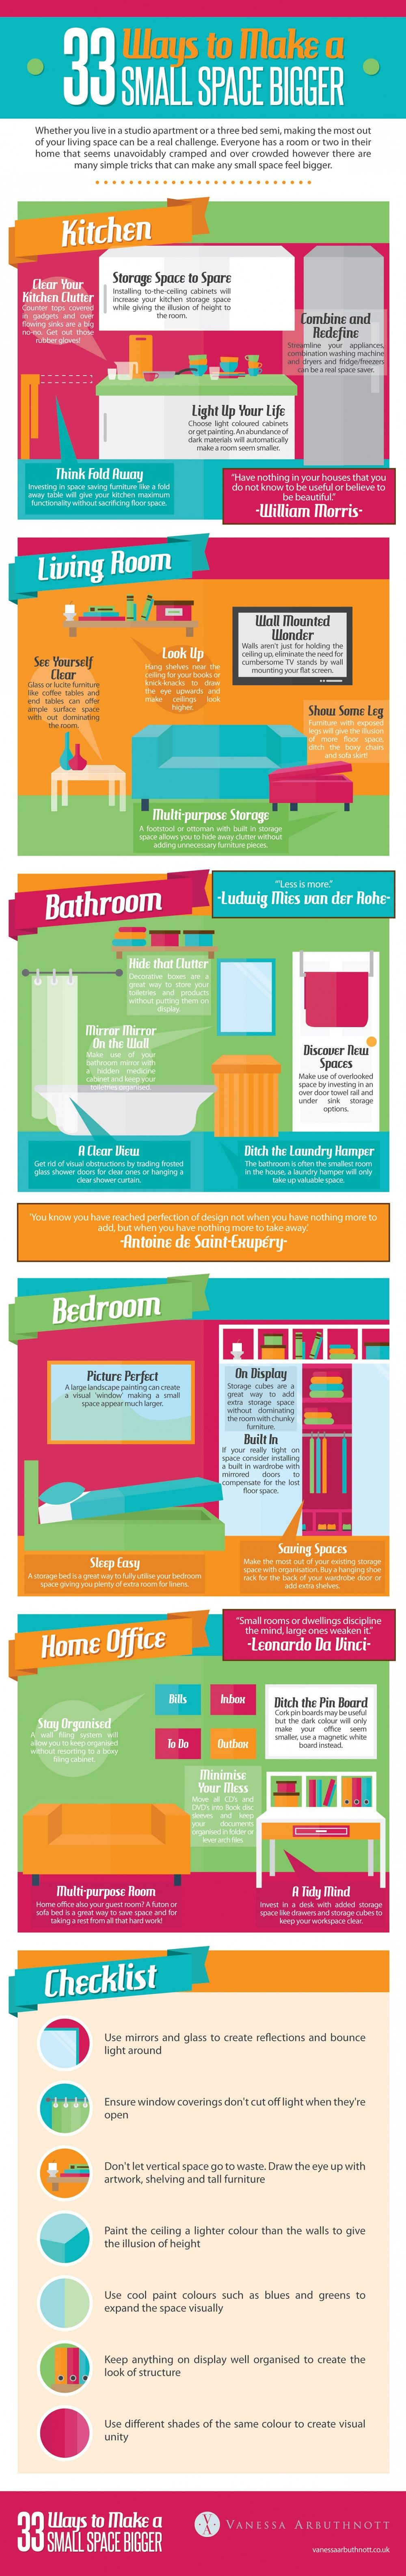 33 Ways To Make A Small Space Bigger #infographic